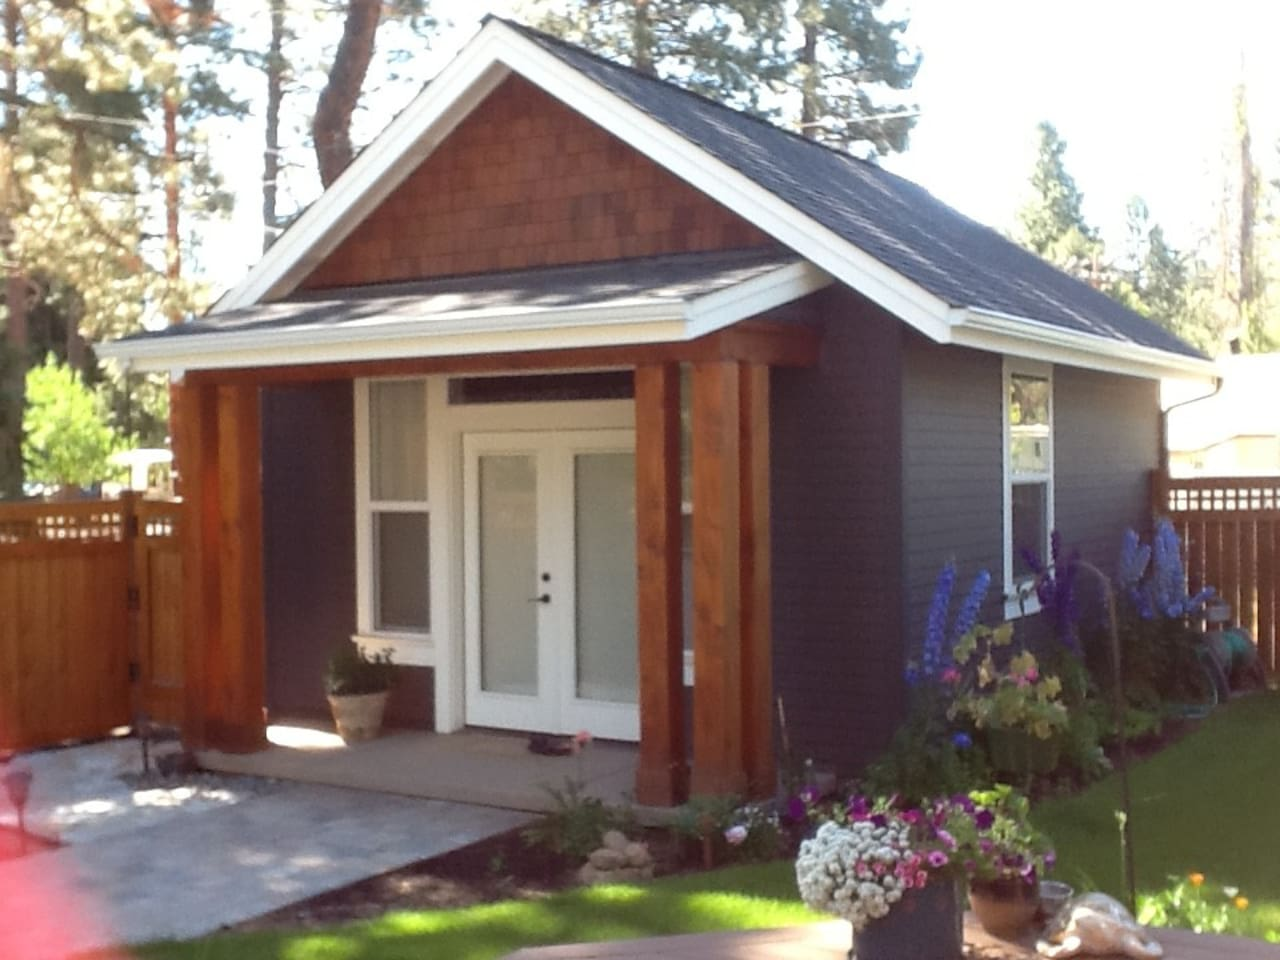 Private studio suite with full bathroom and kitchenette in shared backyard.